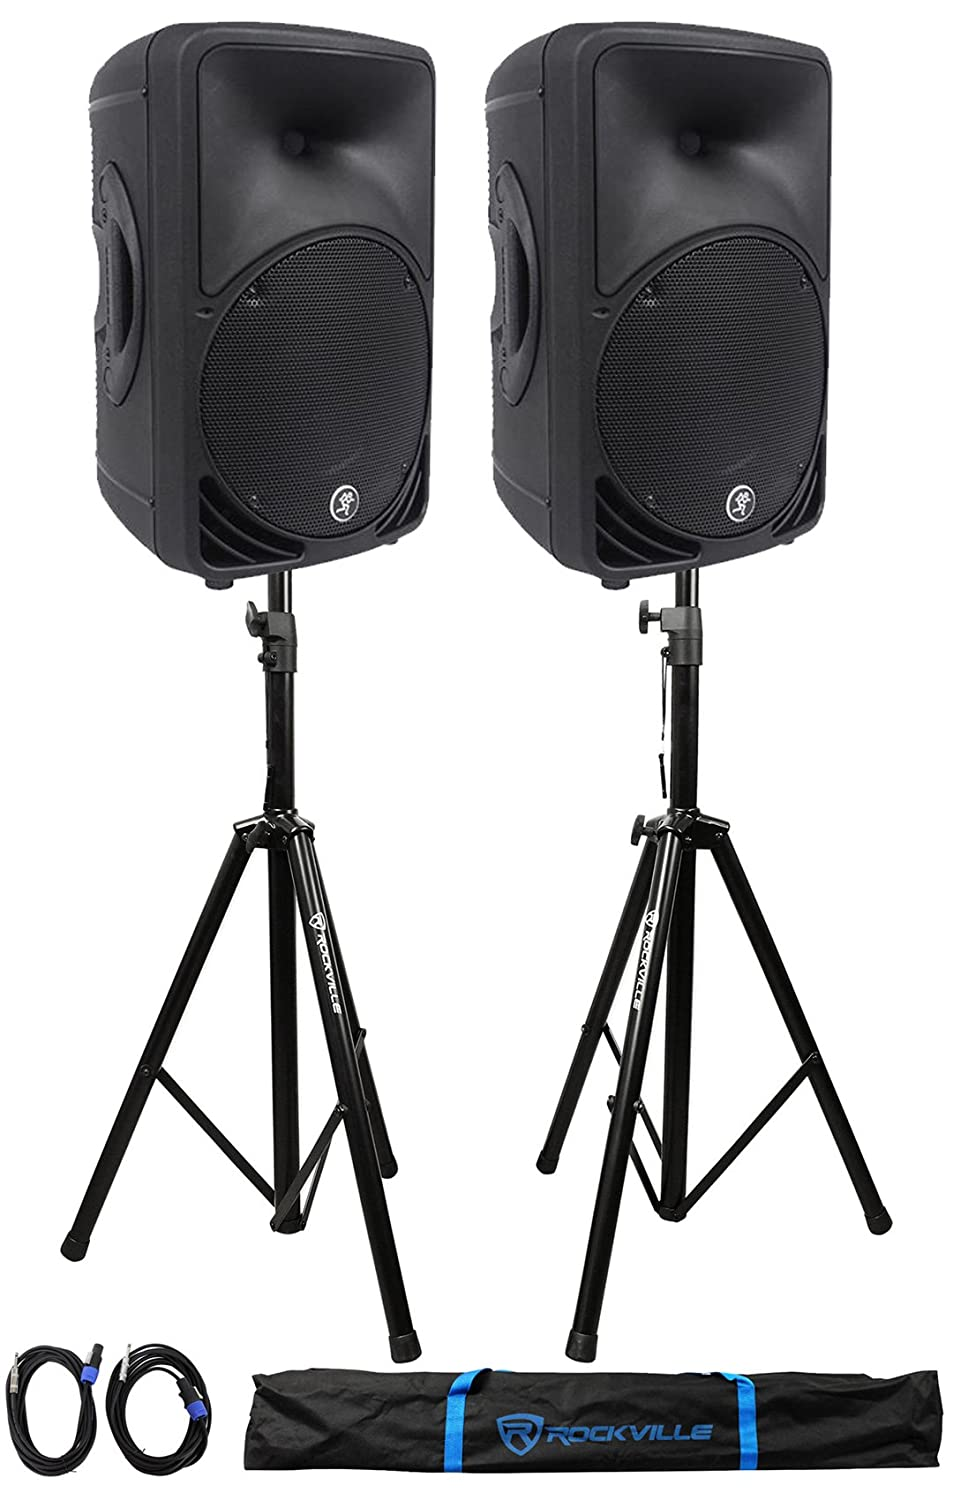 "(2) Mackie C200 10"" 2-Way Passive SR PA Speakers+ 2) Stands +2) Cables +Carry Case 71V62X6rW4L._SL1500_"